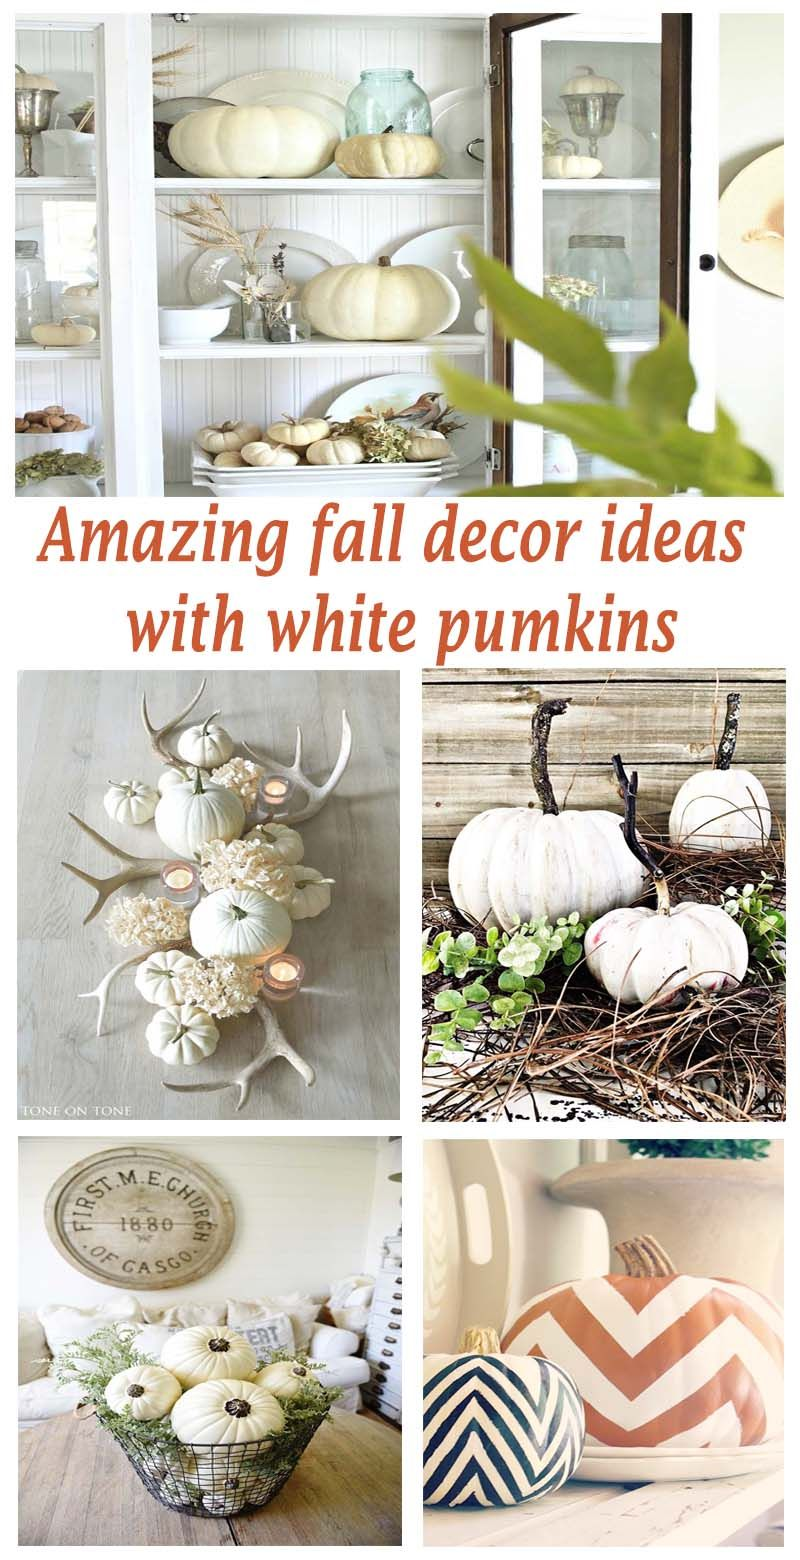 An incredible collection of inspiring fall decor schemes using festive white pumpkins with tips on how to achieve the same look in your home.